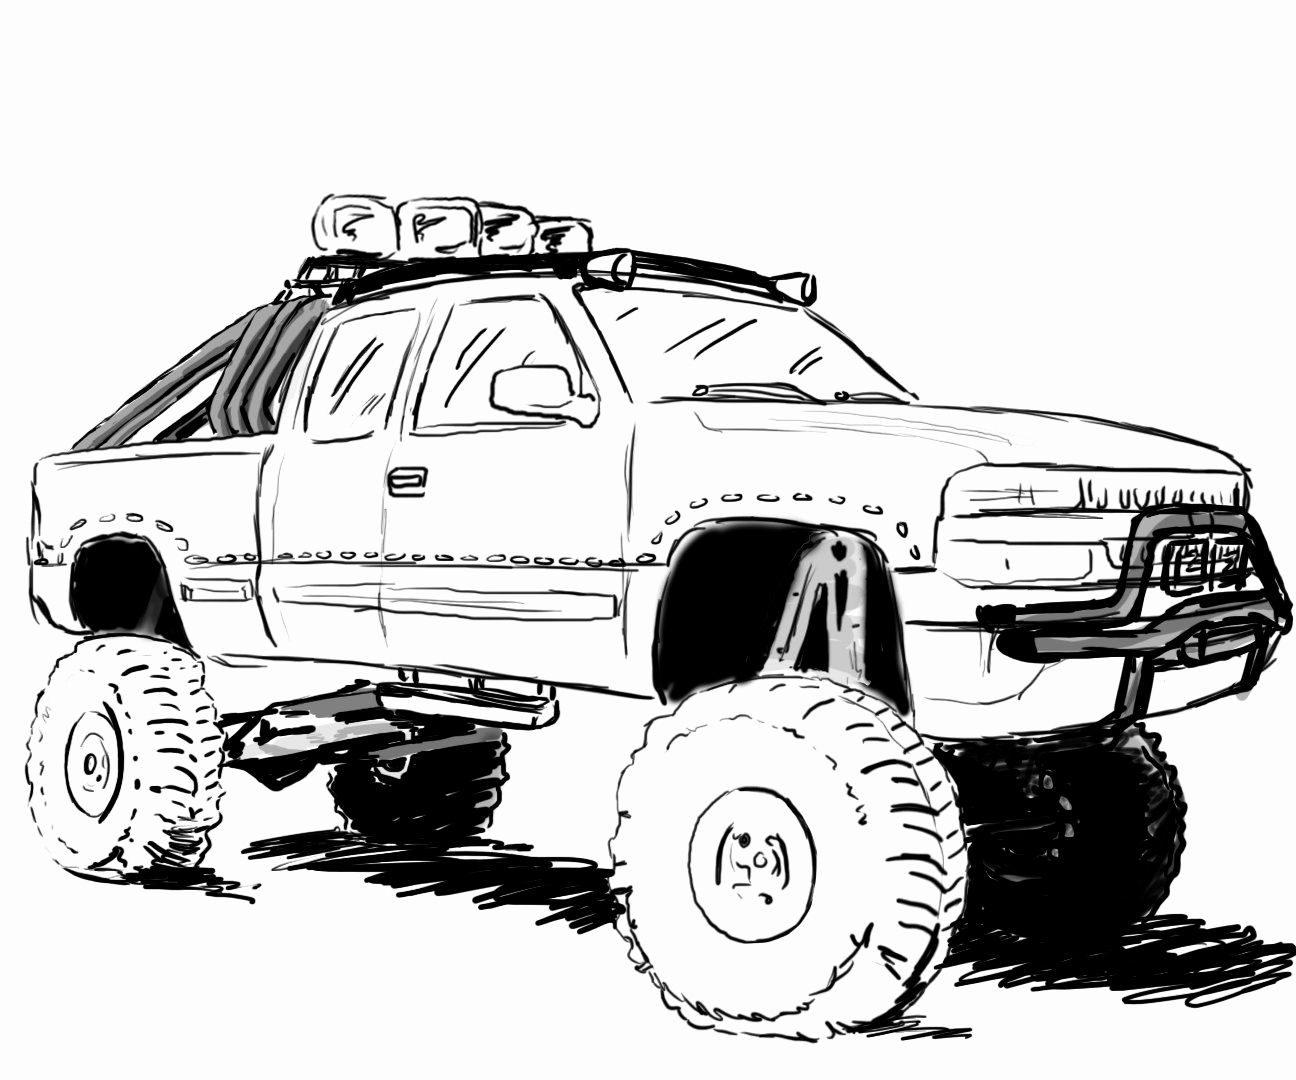 lifted truck coloring pages lifted truck coloring pages at getcoloringscom free truck coloring lifted pages